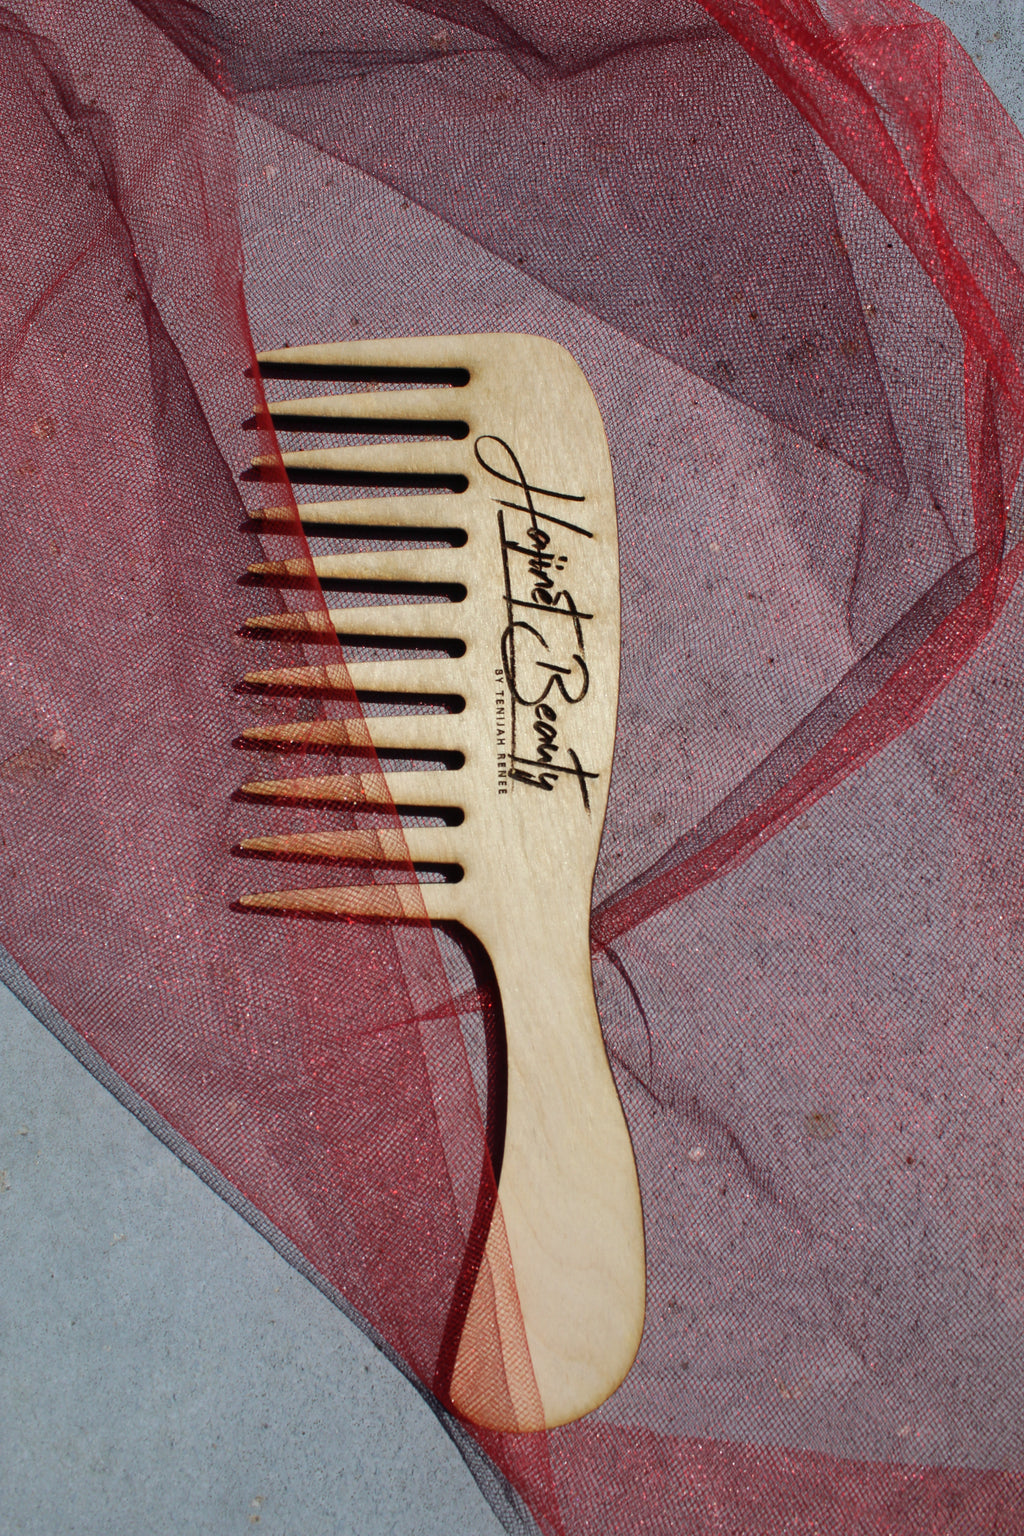 Wooden wide tooth conditioning comb